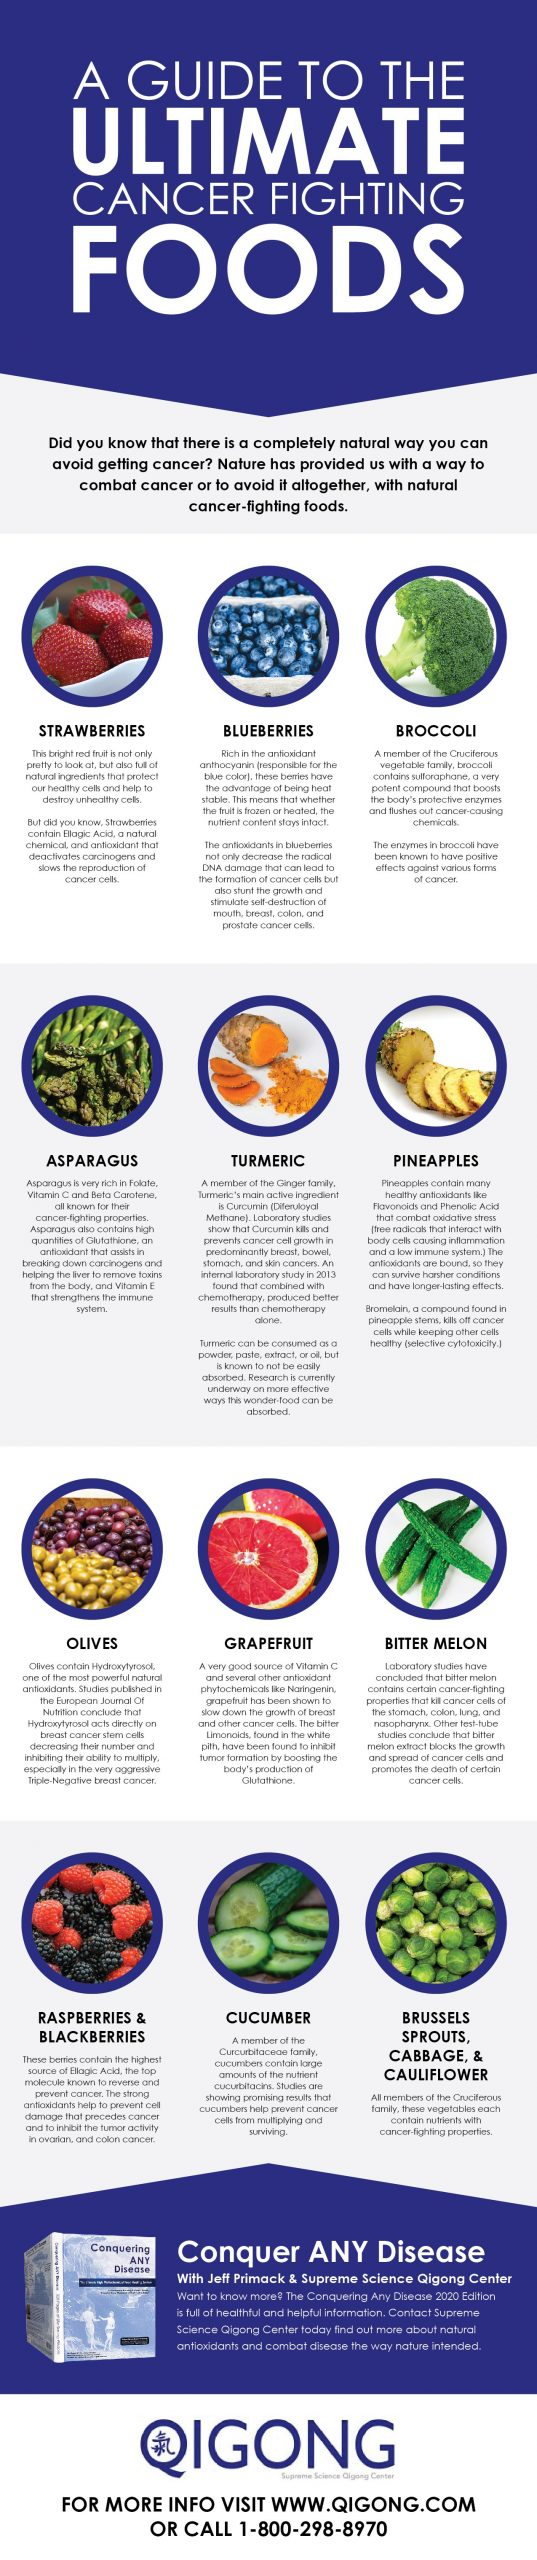 Qigong-Cancer-Fighting-Food-infographic